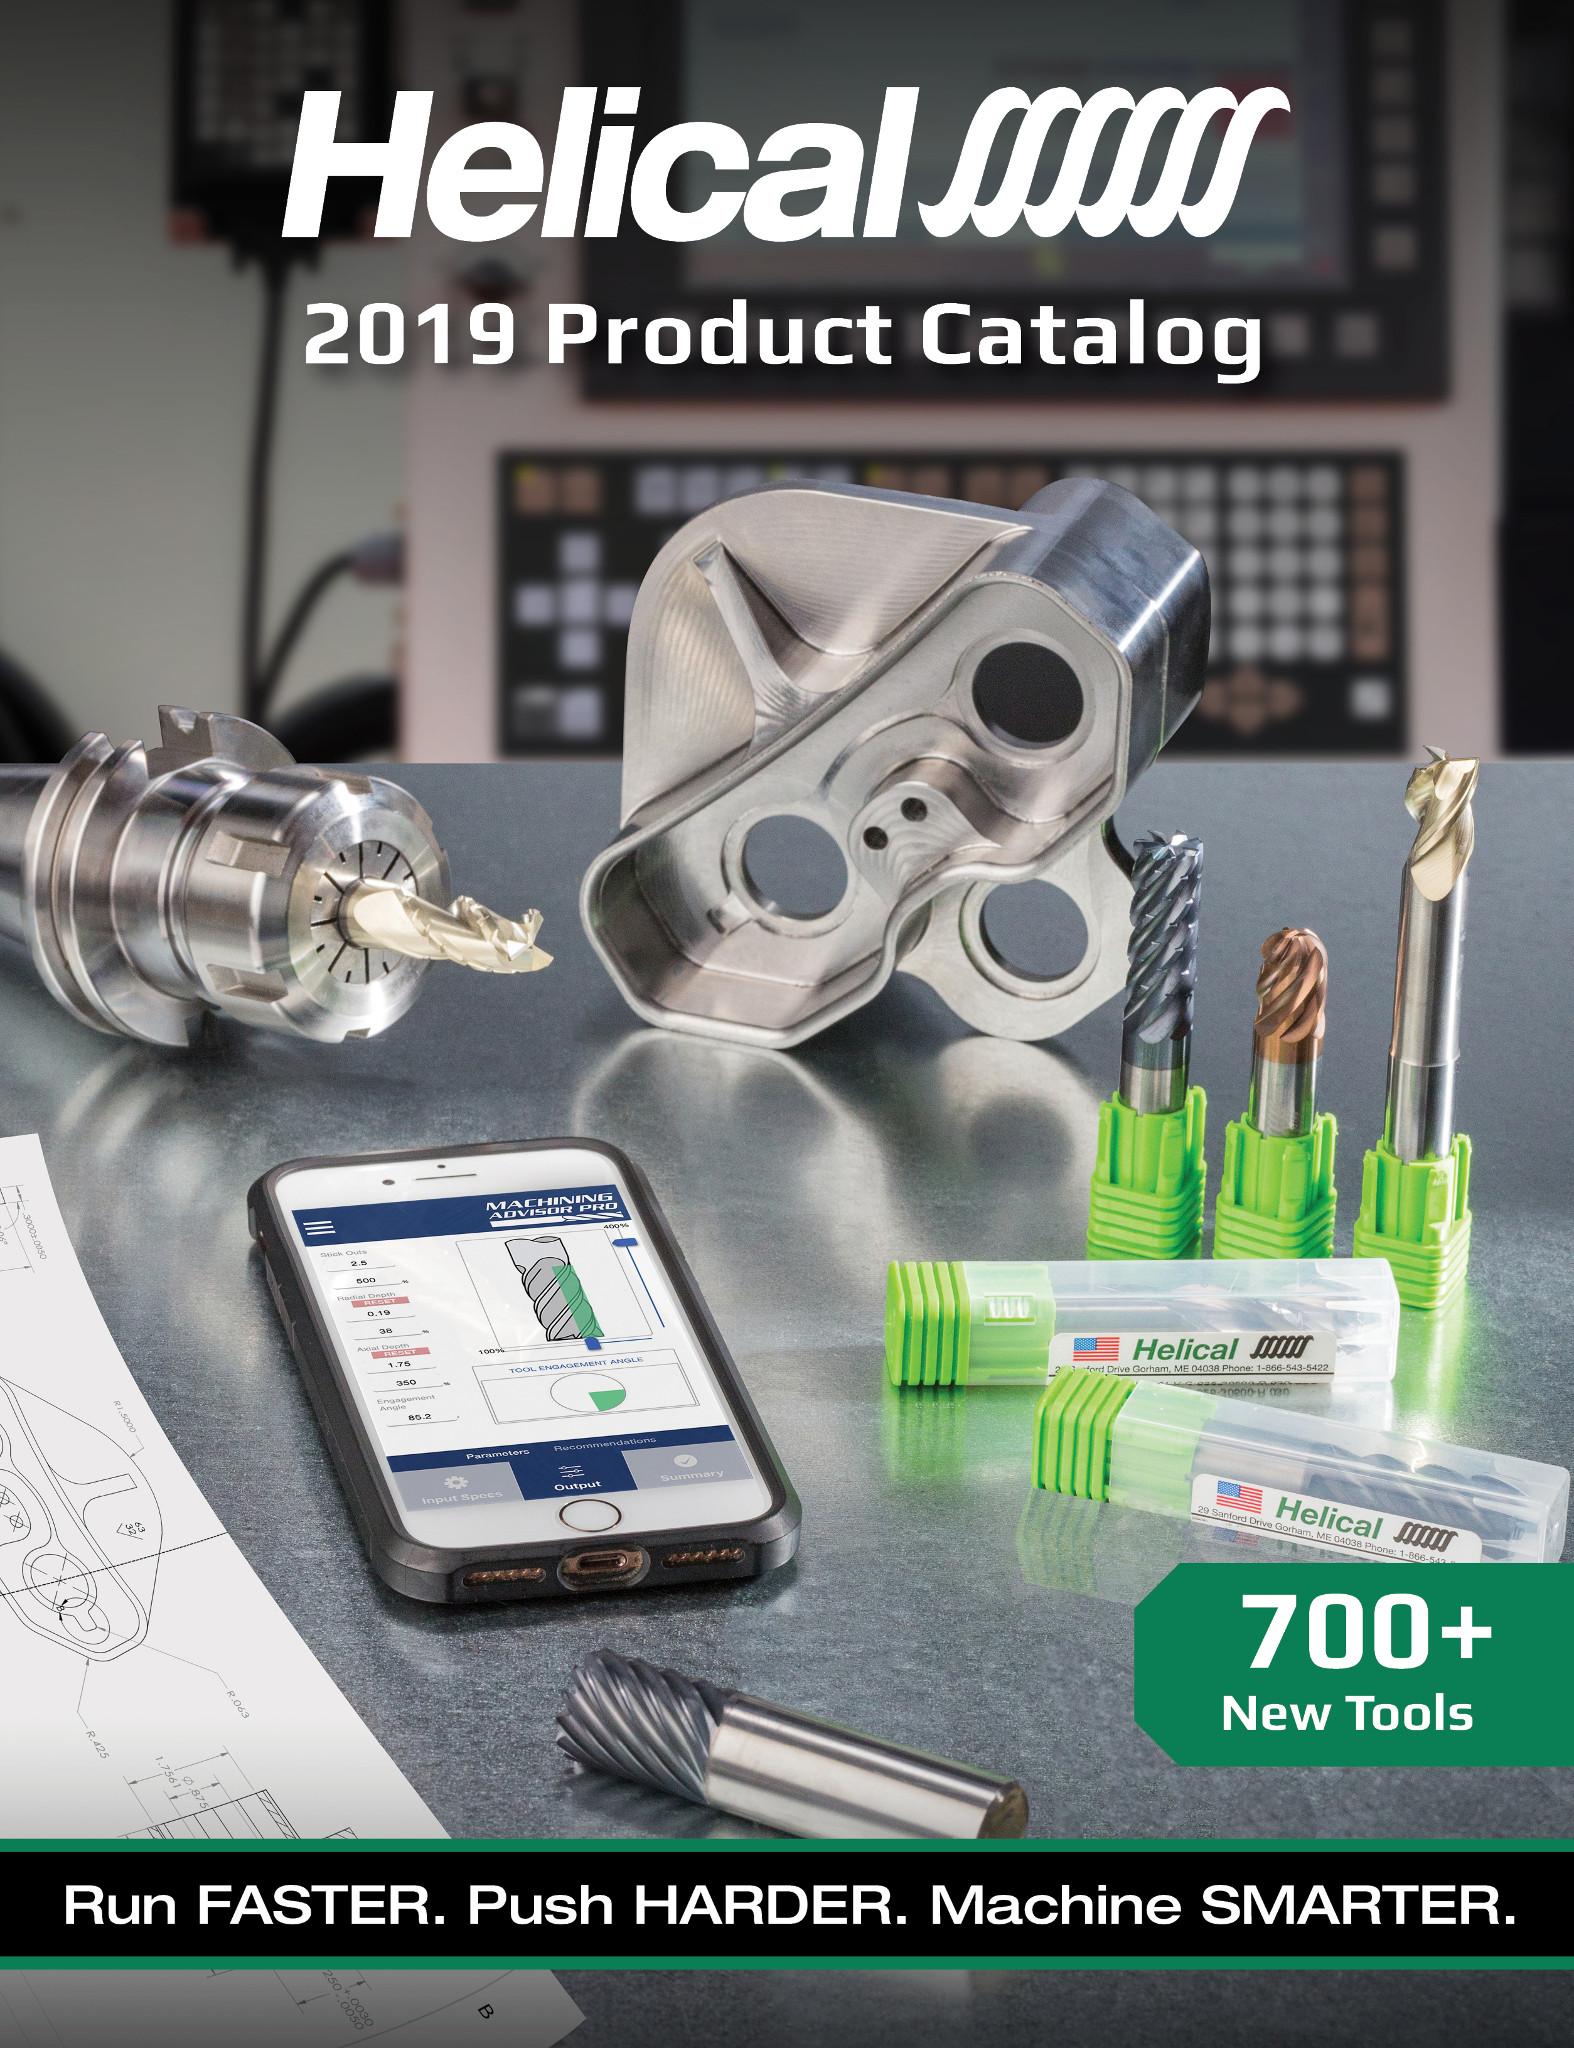 View Full Product Catalog